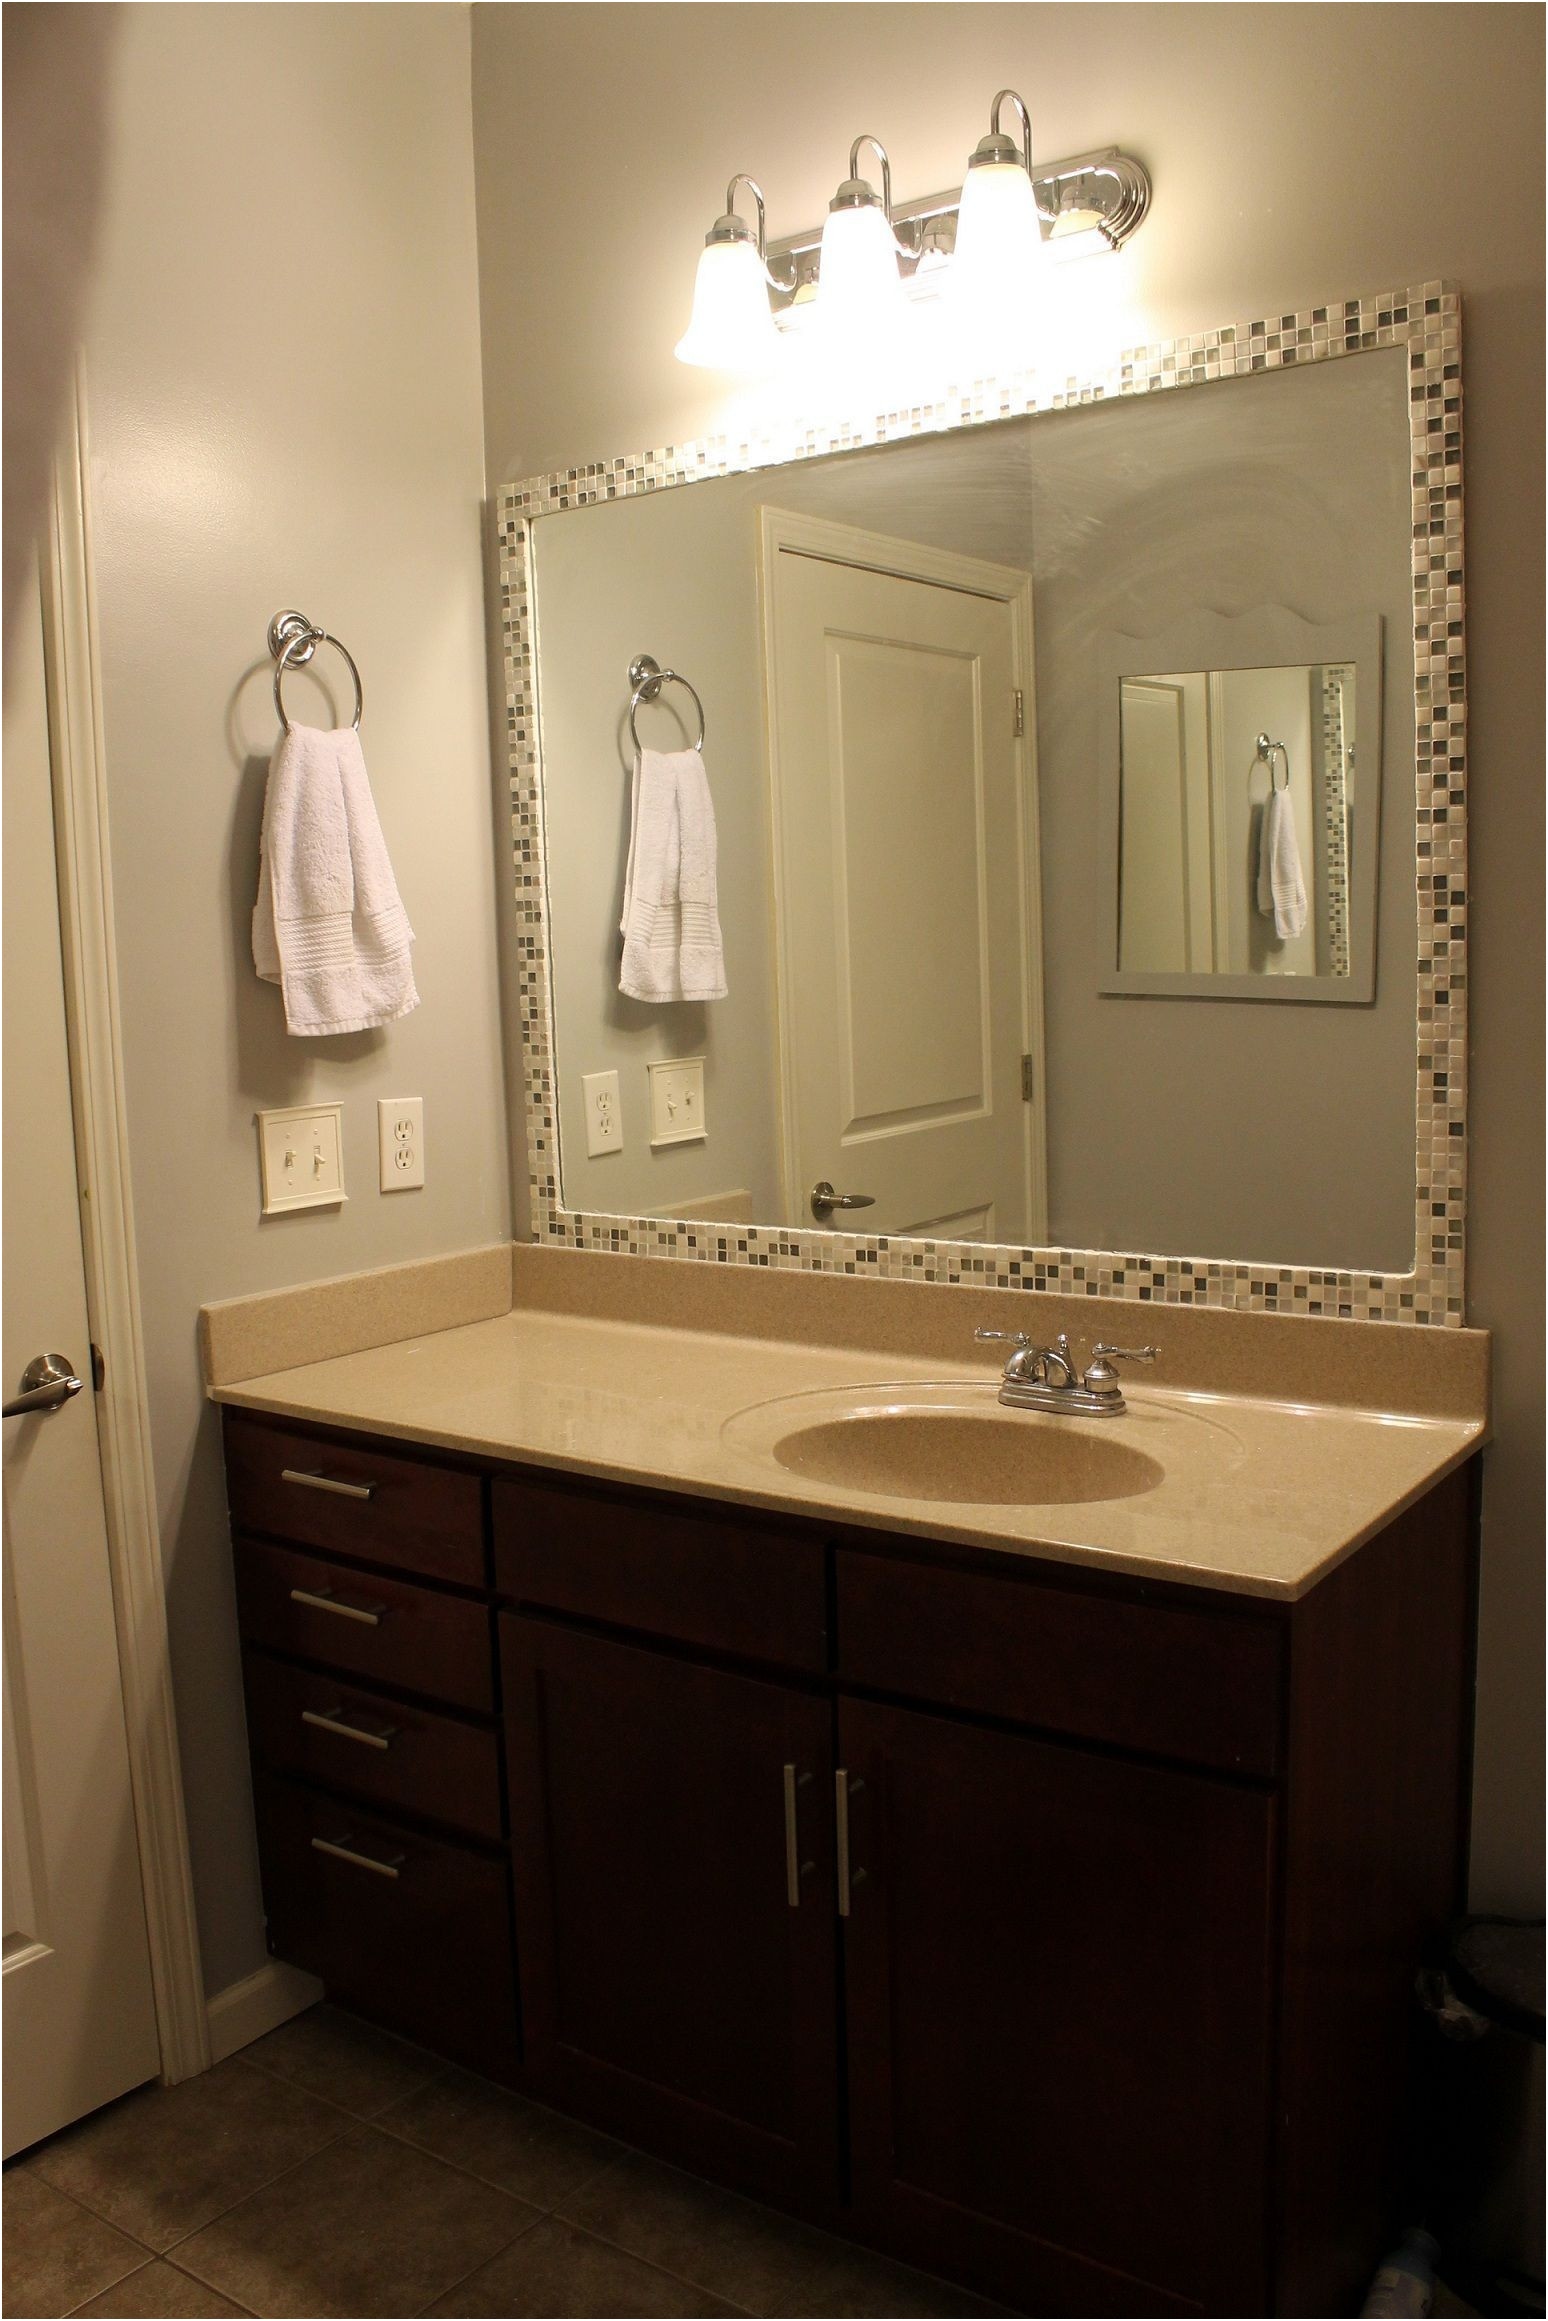 Frames for Mirrors In Bathrooms Awesome Best Bathroom Mirror Ideas for A Small Bathroom